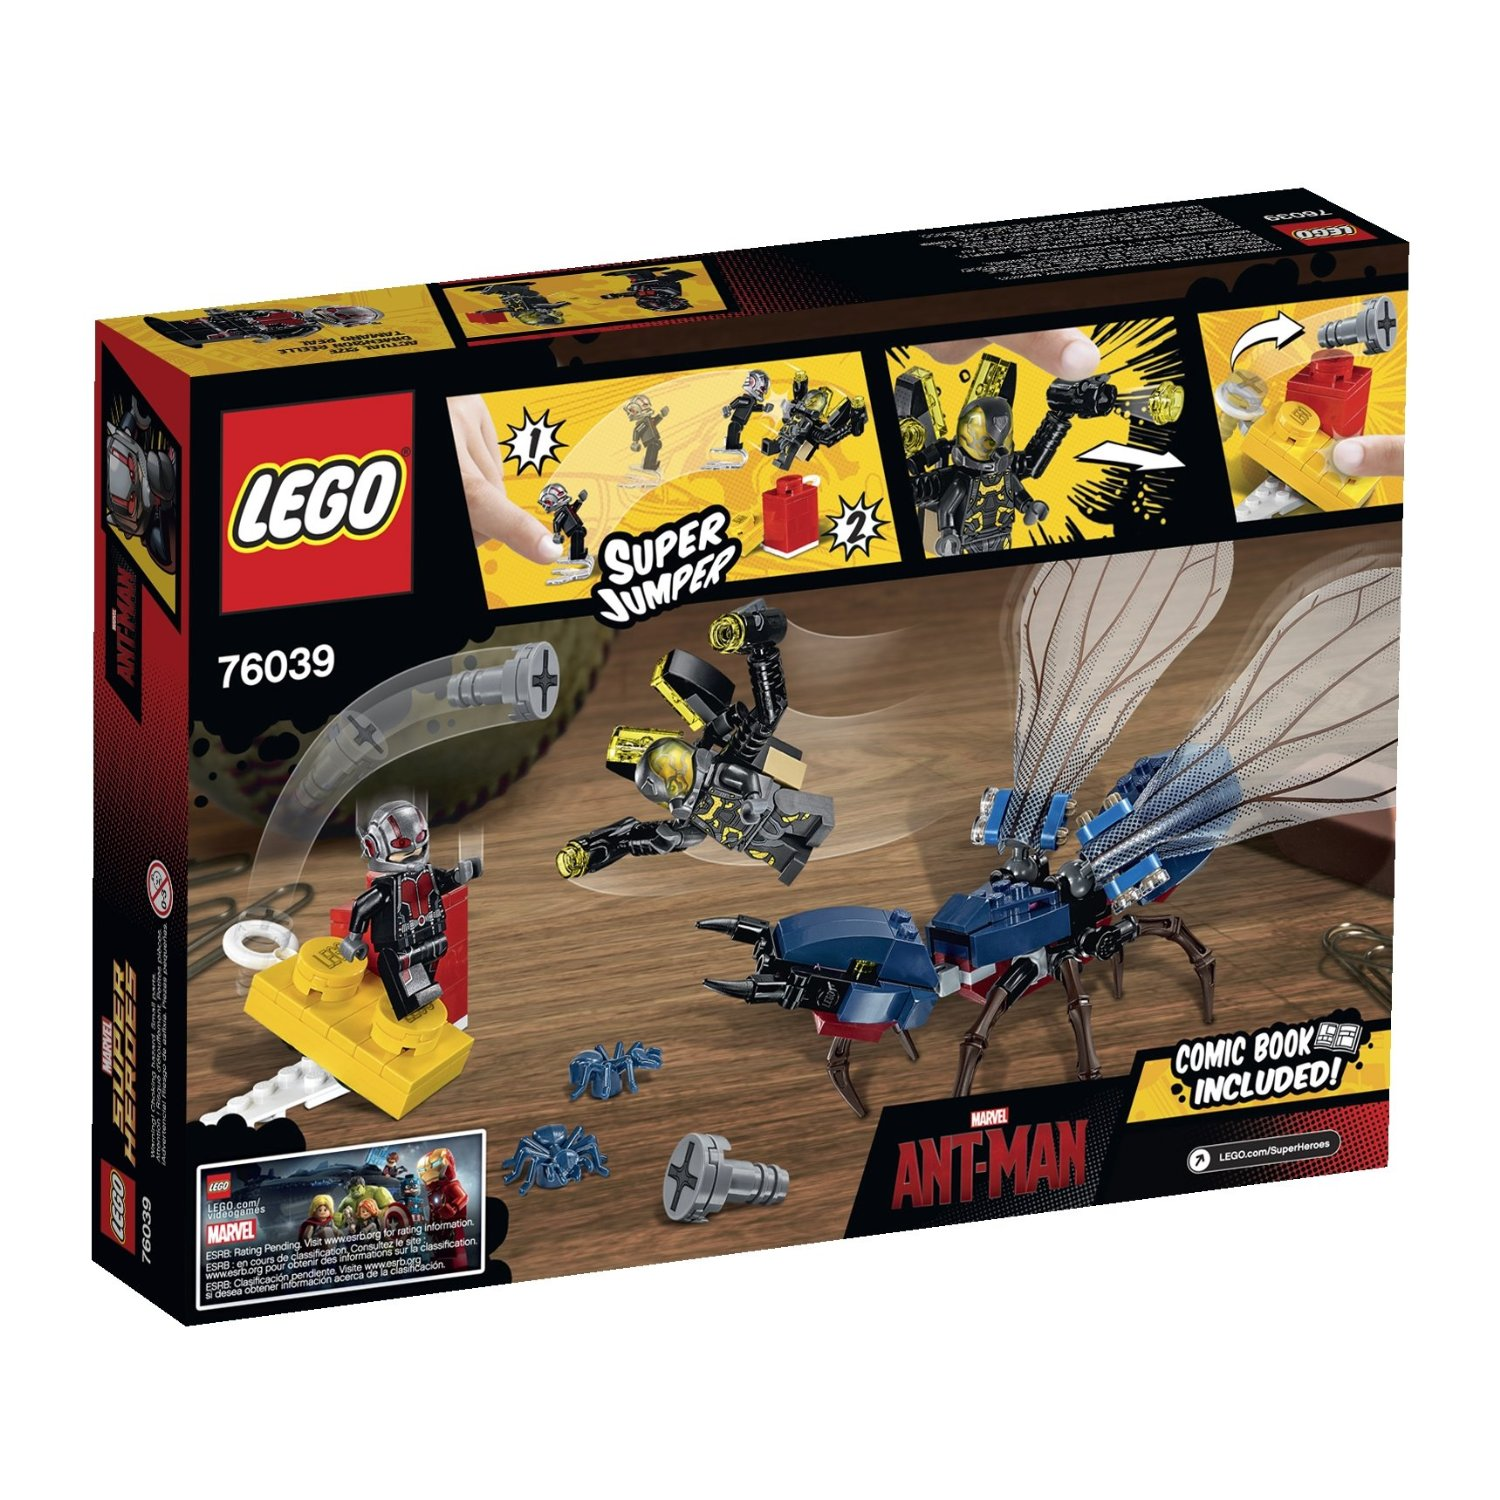 LEGO Ant-Man Poster and Final Battle Set ...